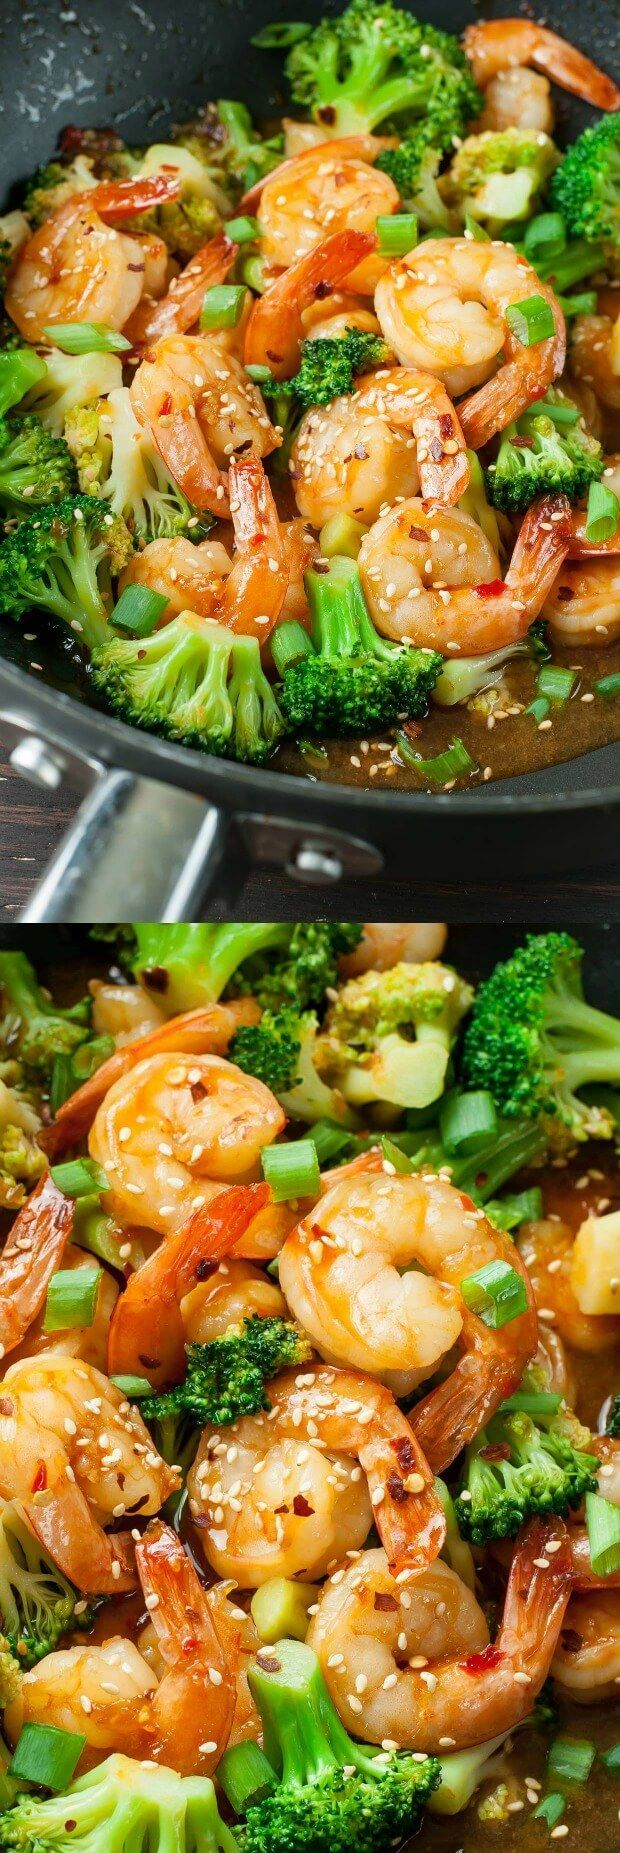 This healthy 20 minute take-out fake-outSzechuan Shrimp and Broccolirecipe is ridiculously easy and PACKED with flavor! Vegetarian and Gluten-Free